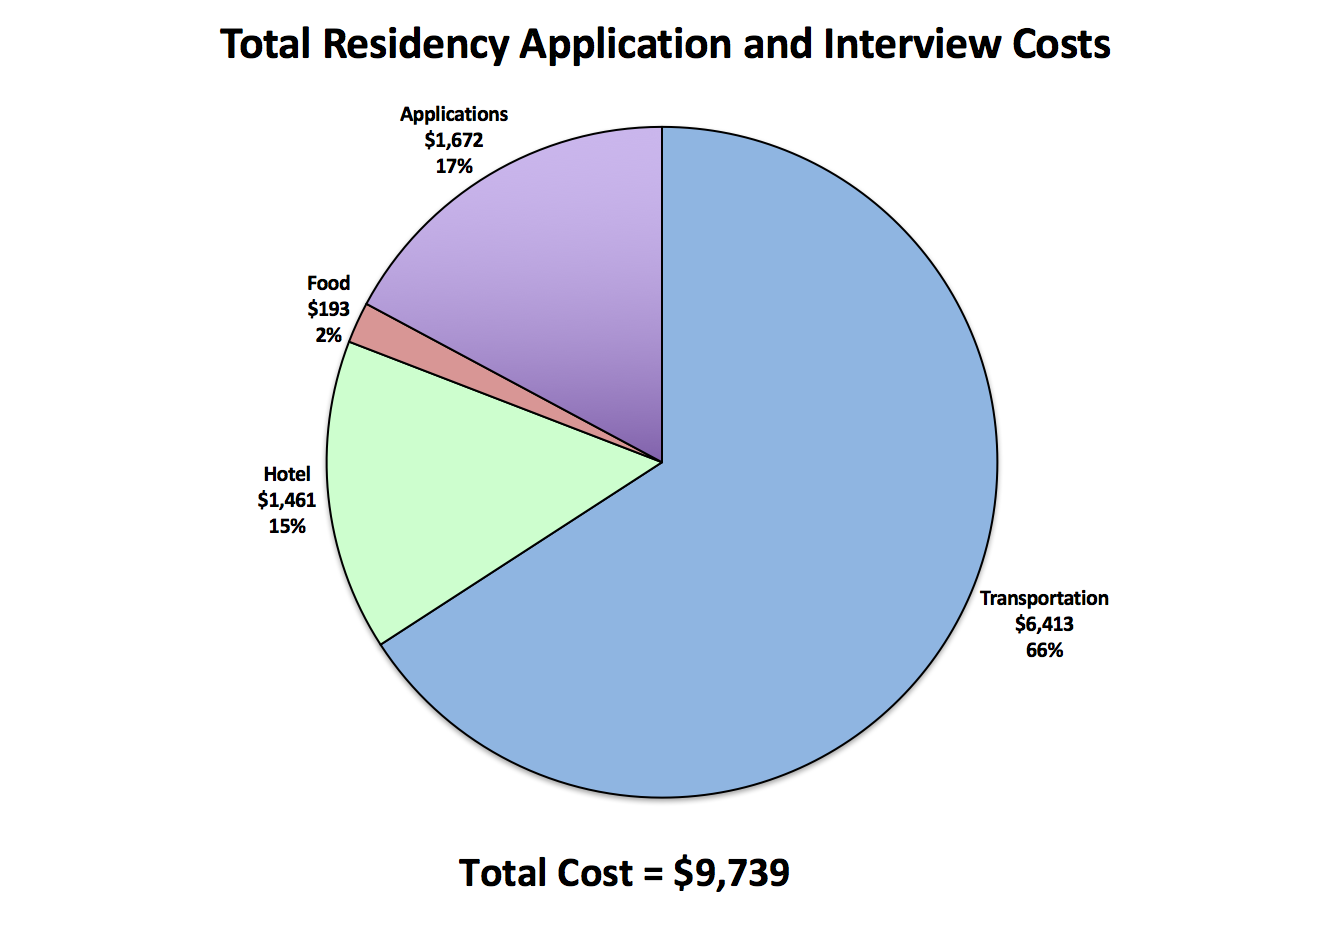 How Much Will it Cost to Apply for Residency and Travel to